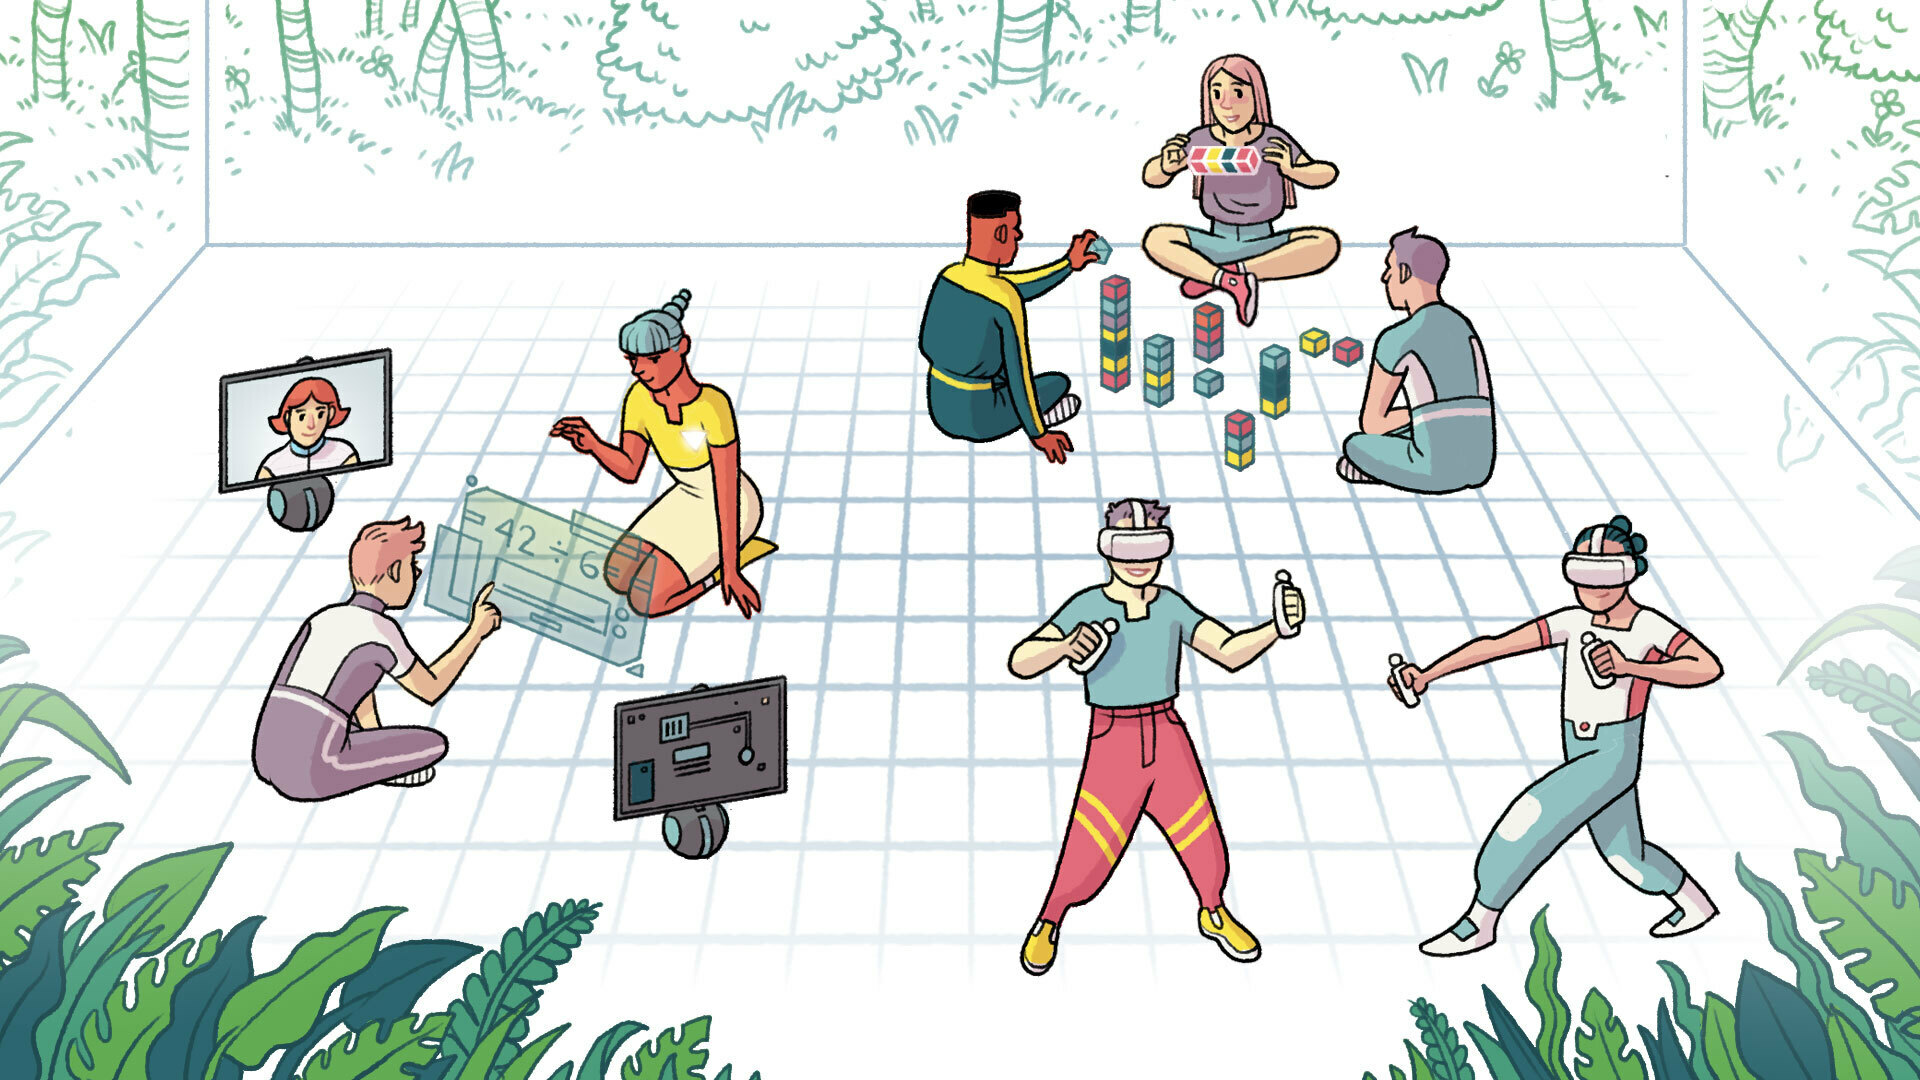 Exciting high-tech visions of learning — but how can they overcome a system designed to stagnate?